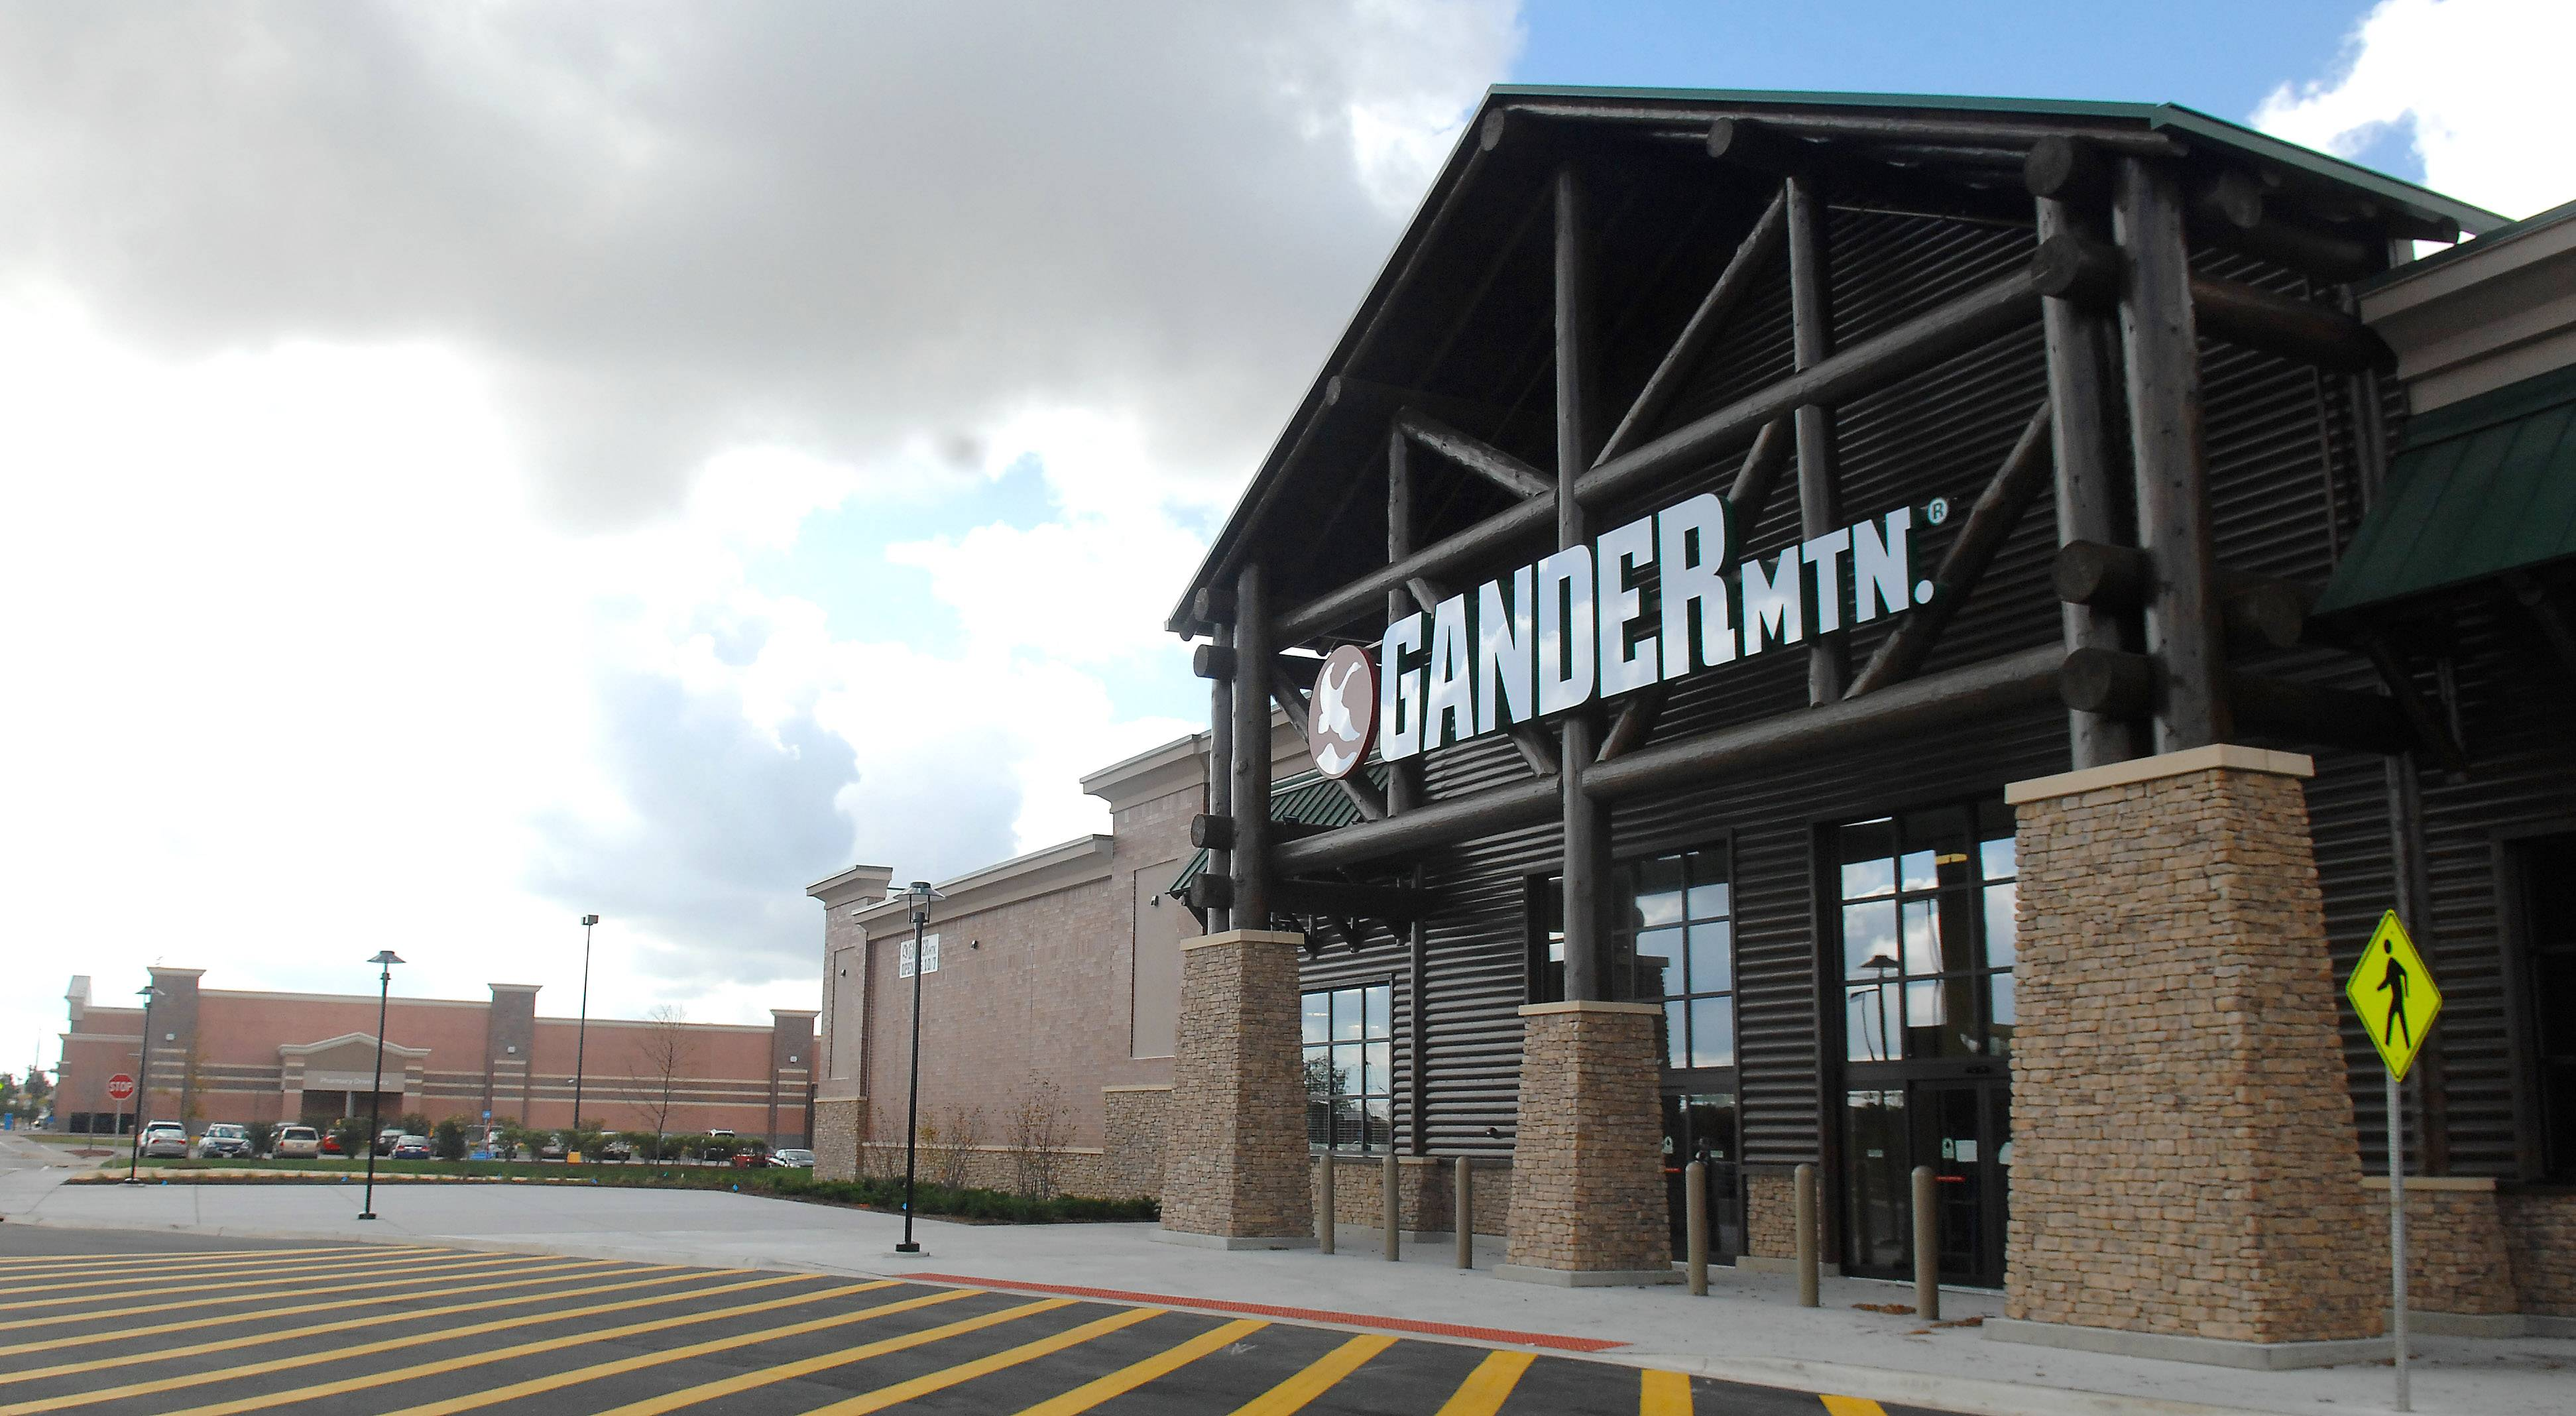 About Gander Mountain Company Gander Mountain Company headquartered in St. Paul, MN, is the nation's largest and fastest growing retail network of outdoor specialty stores for hunting, fishing, camping, marine and outdoor lifestyle products and services.